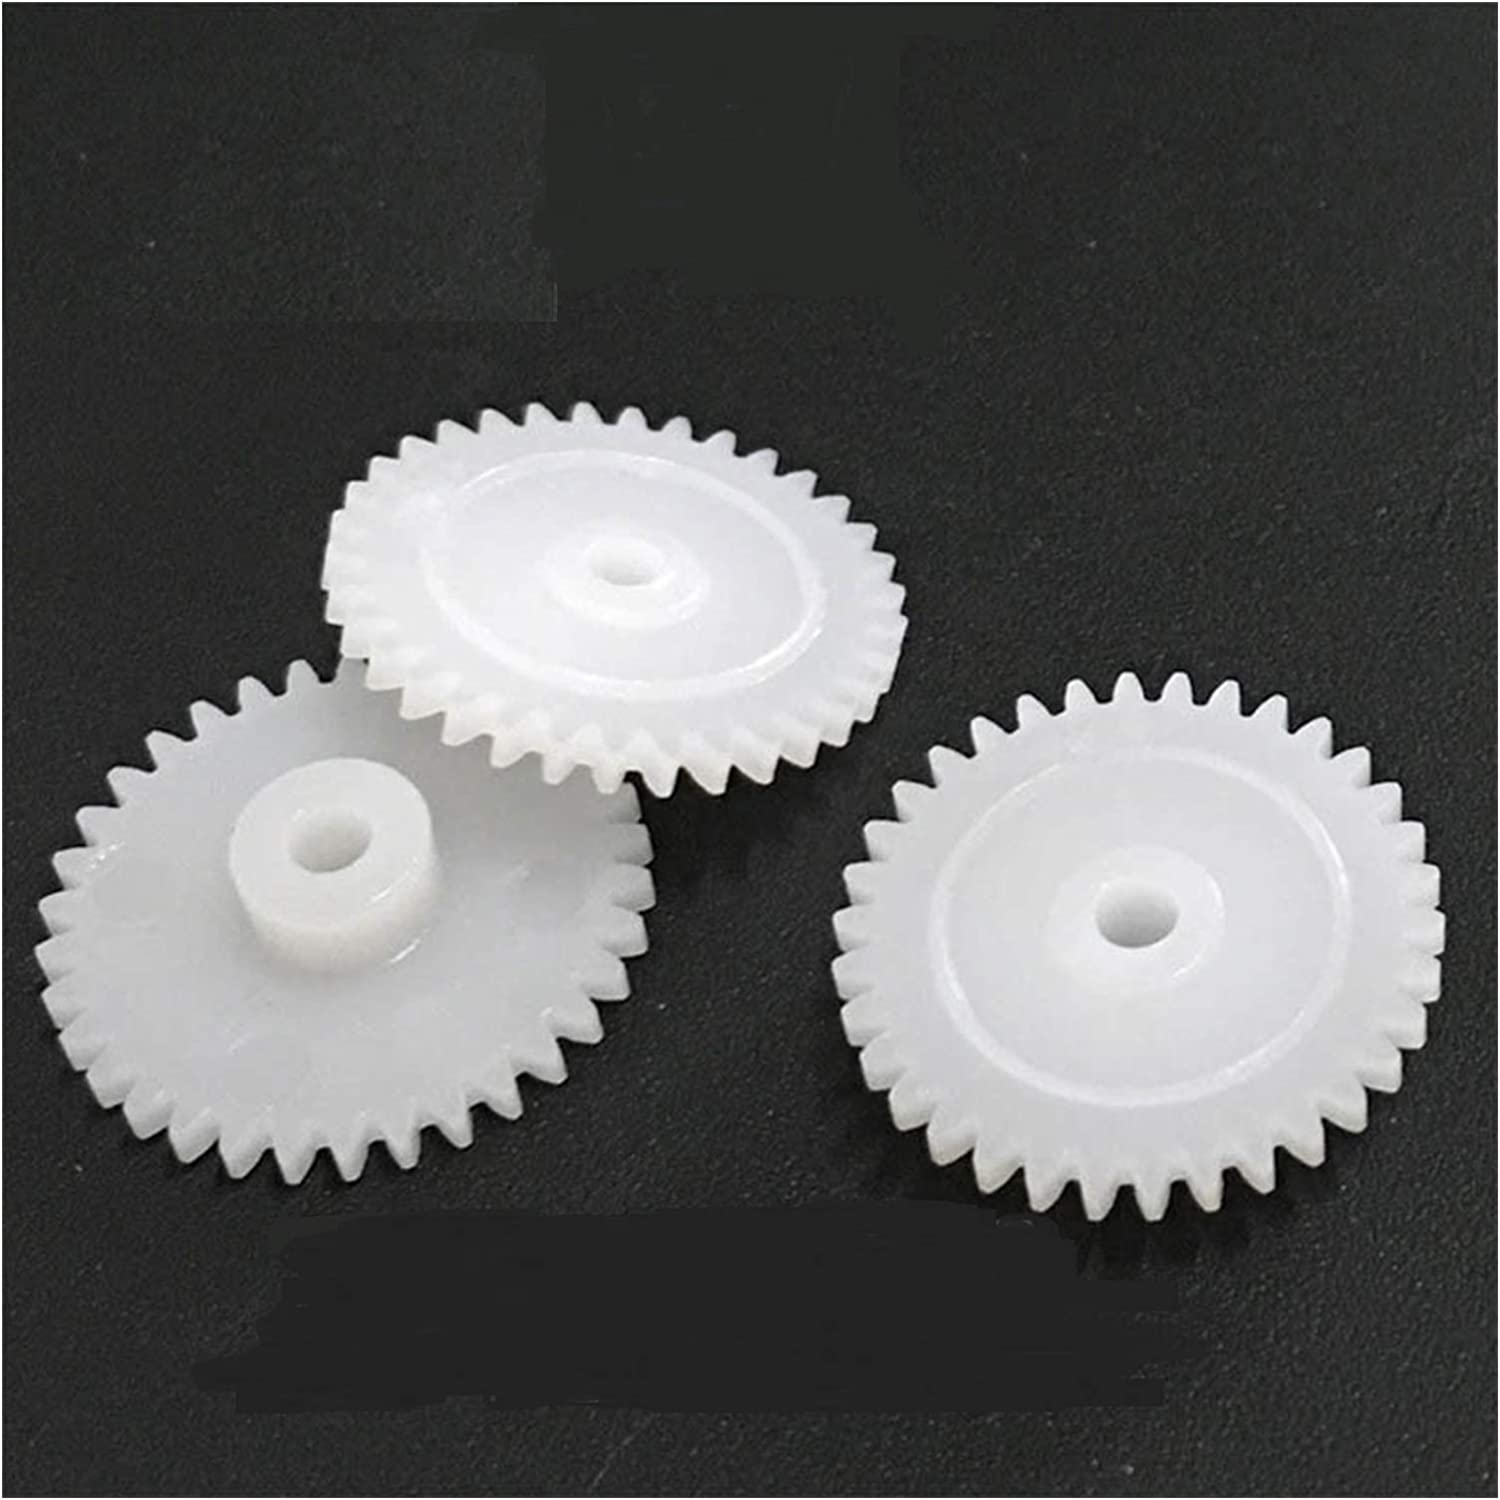 TONGCHAO Tchaogr 342.5A Gears Parts Modulus 18mm Di 34 Tooth Max 65% sale OFF 0.5